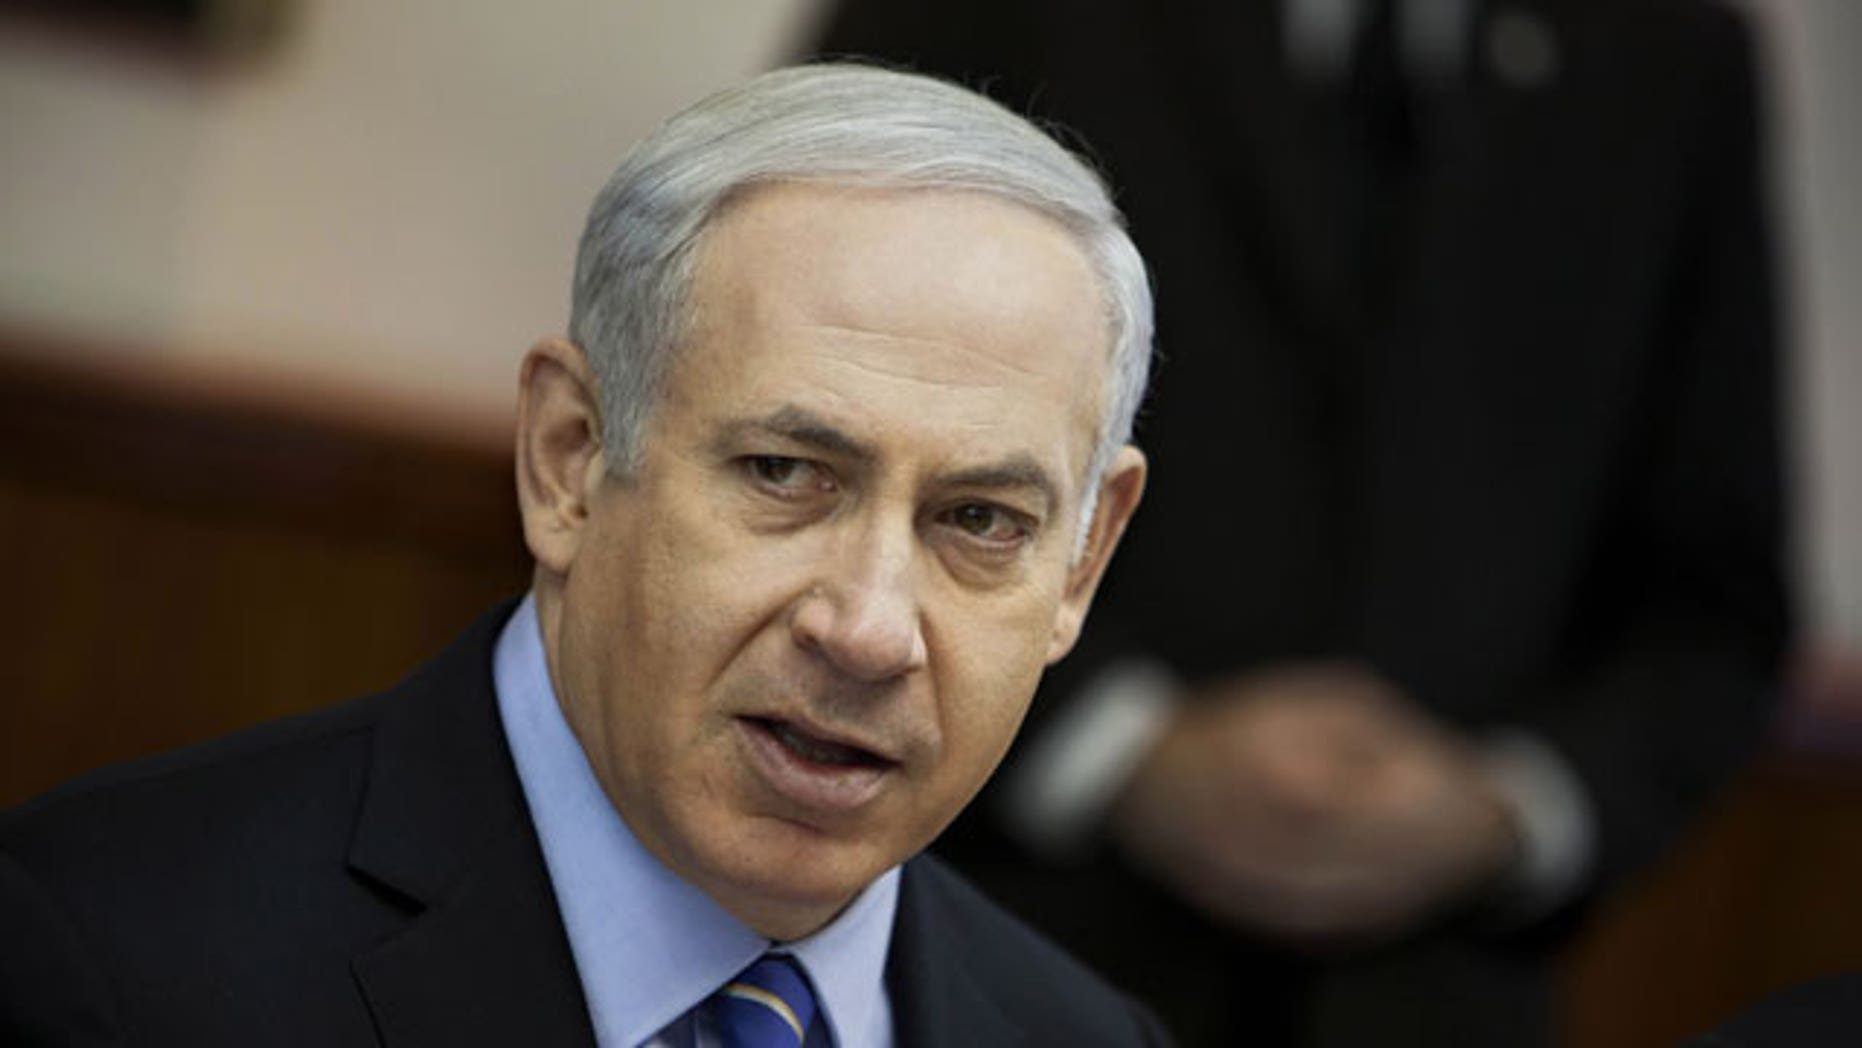 January 15, 2012: Israeli Prime Minister Benjamin Netanyahu attends the weekly cabinet meeting in Jerusalem.